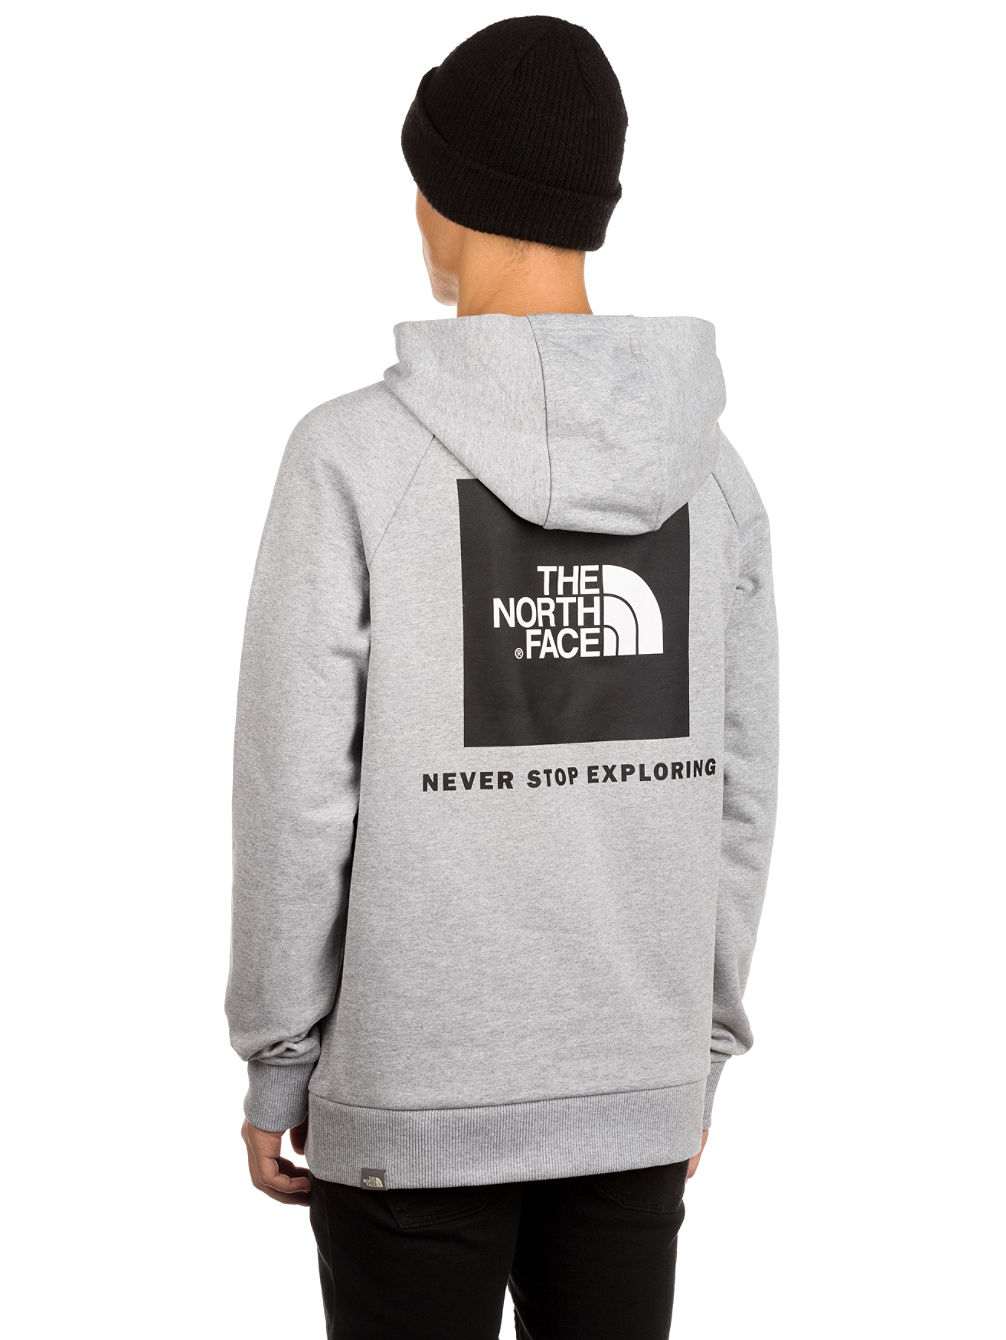 Buy THE NORTH FACE Raglan Red Box Hoodie online at blue-tomato.com 0e39031137fc